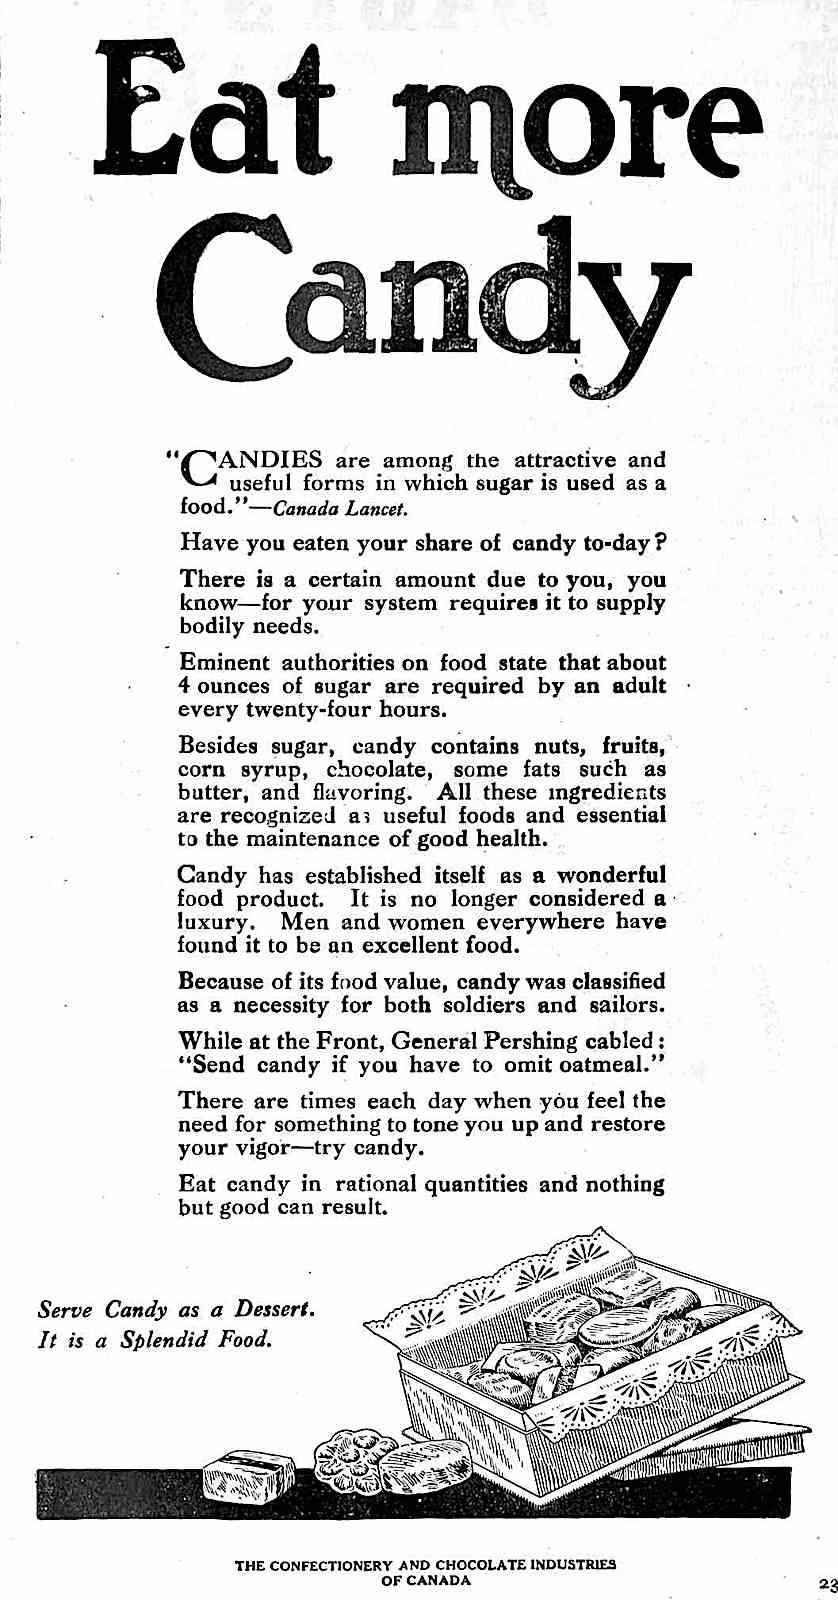 The Confectionery and Chocolate Industries of Canada in 1919, Eminent authorities on food state that about 4 ounces of sugar are required by an adult every twenty-four hours